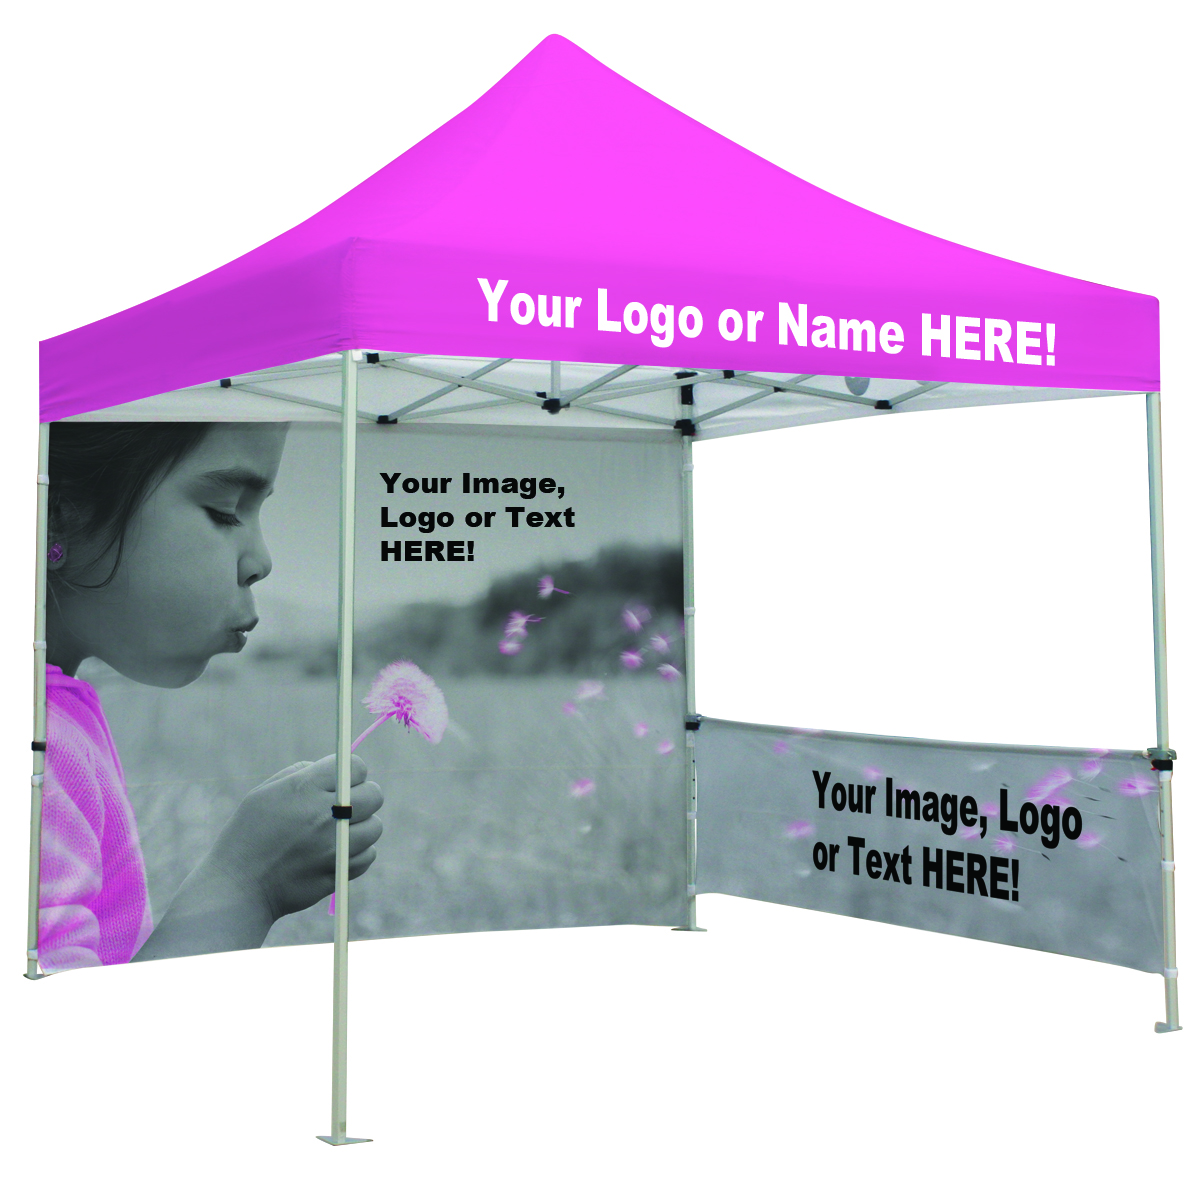 Custom Canopy Tents  sc 1 st  Instant Sign Factory & Custom Canopy Tents | Instant Sign Factory